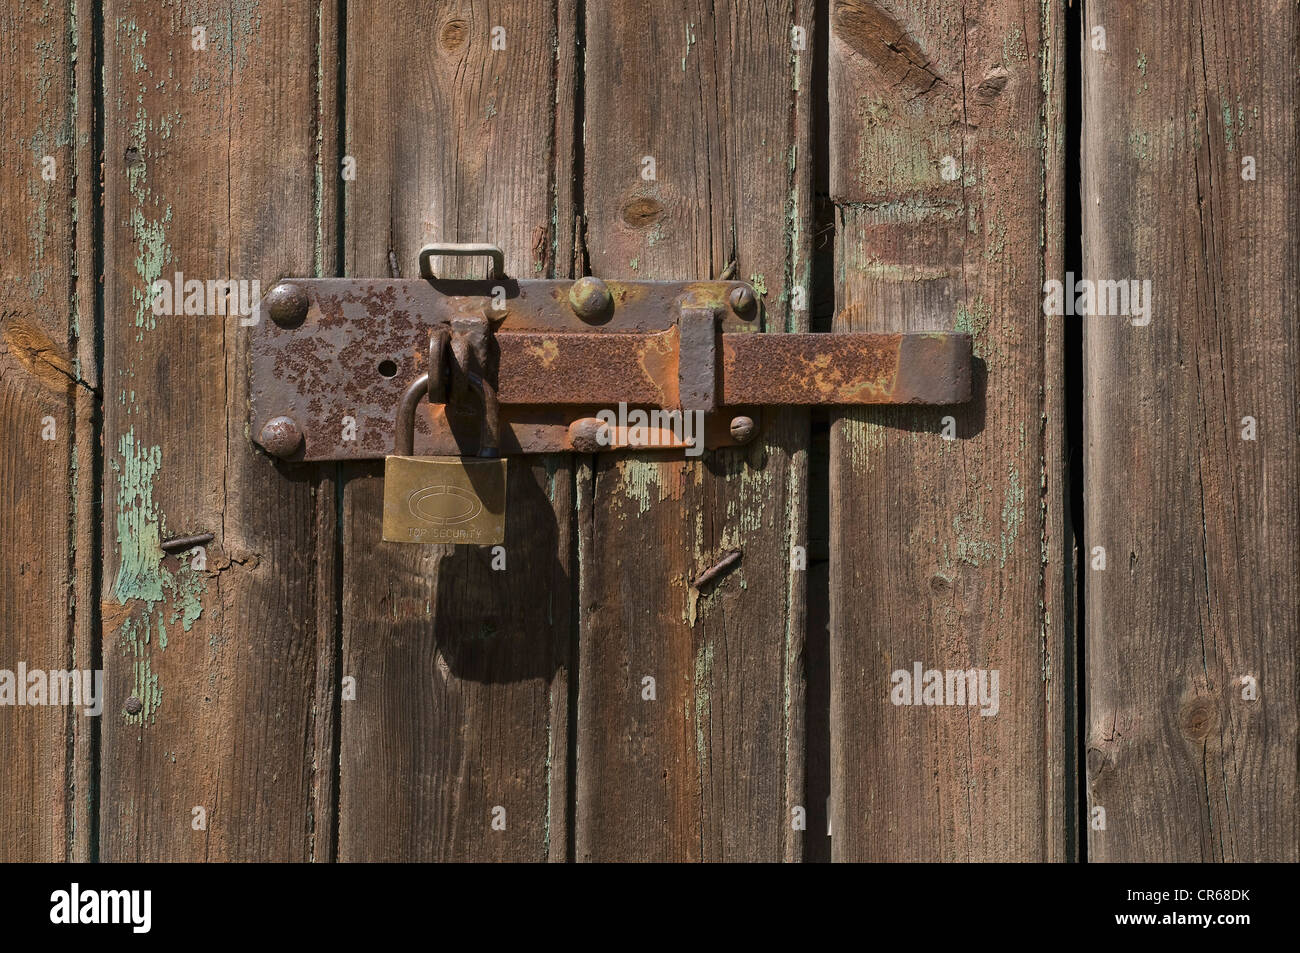 Rusty metal latch on a shed door - Stock Image